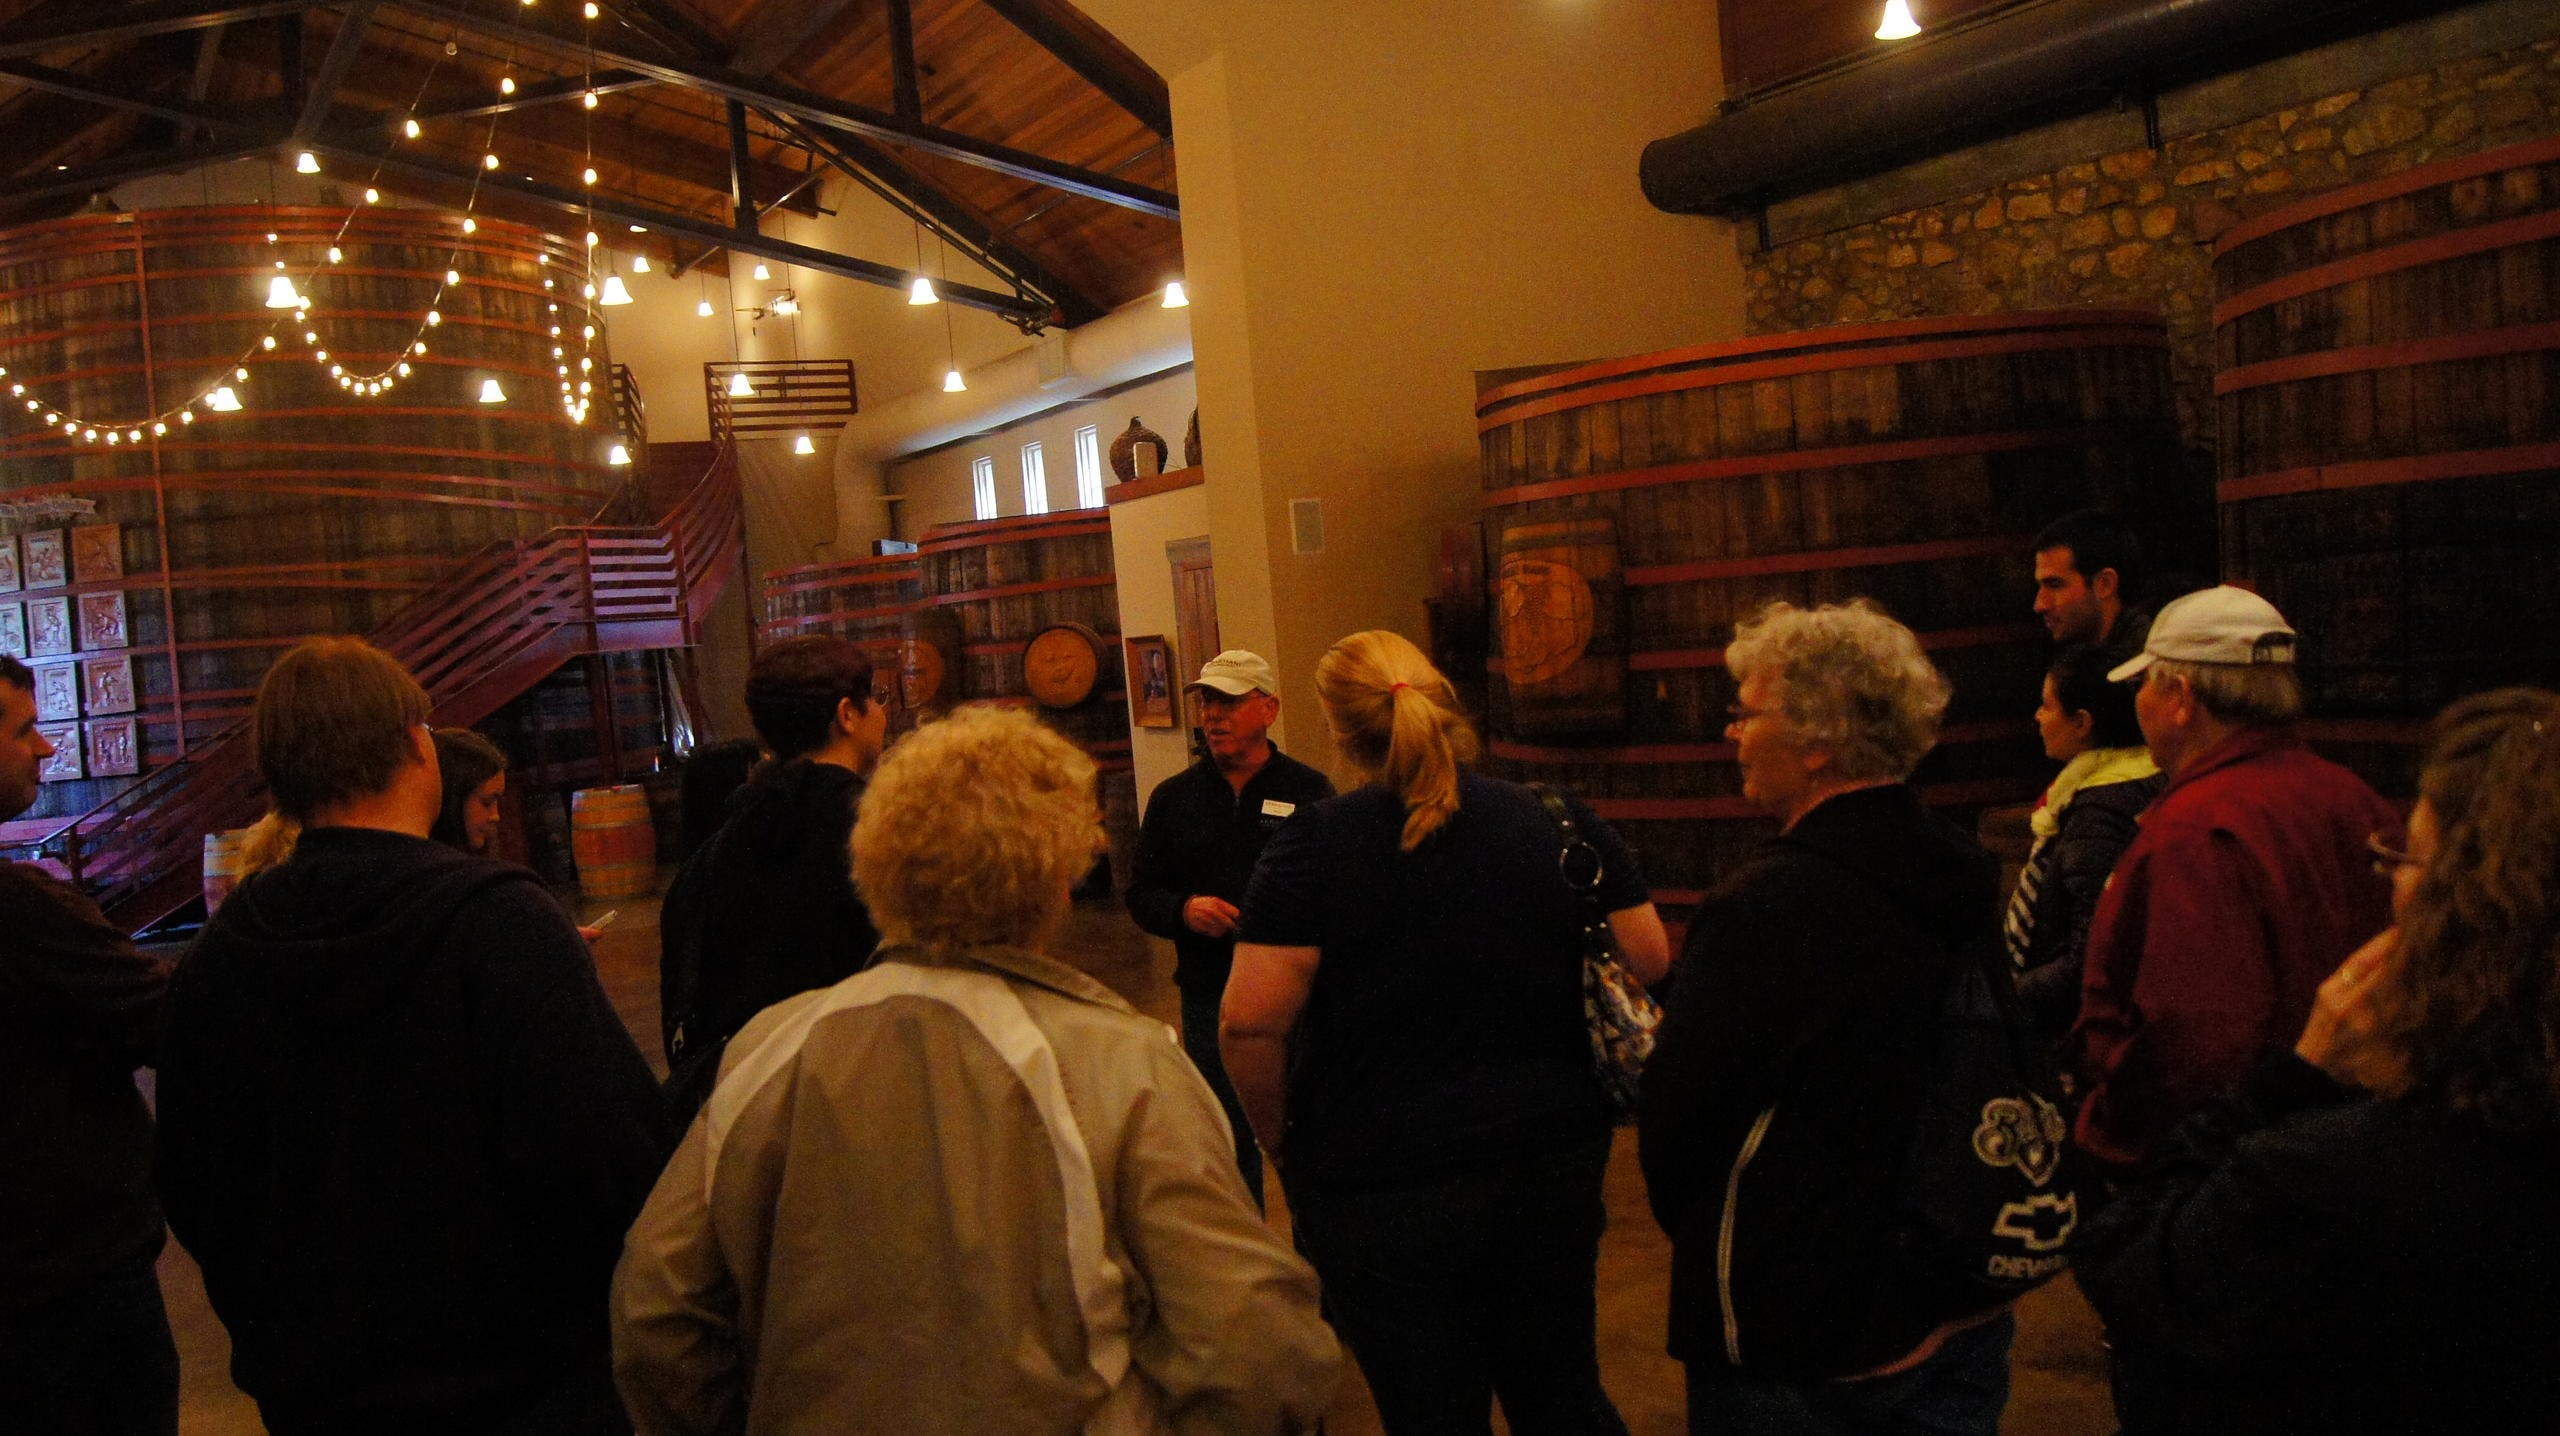 Discover Wine Country Tour & Tasting Experience - Tour Photo 1 of 11